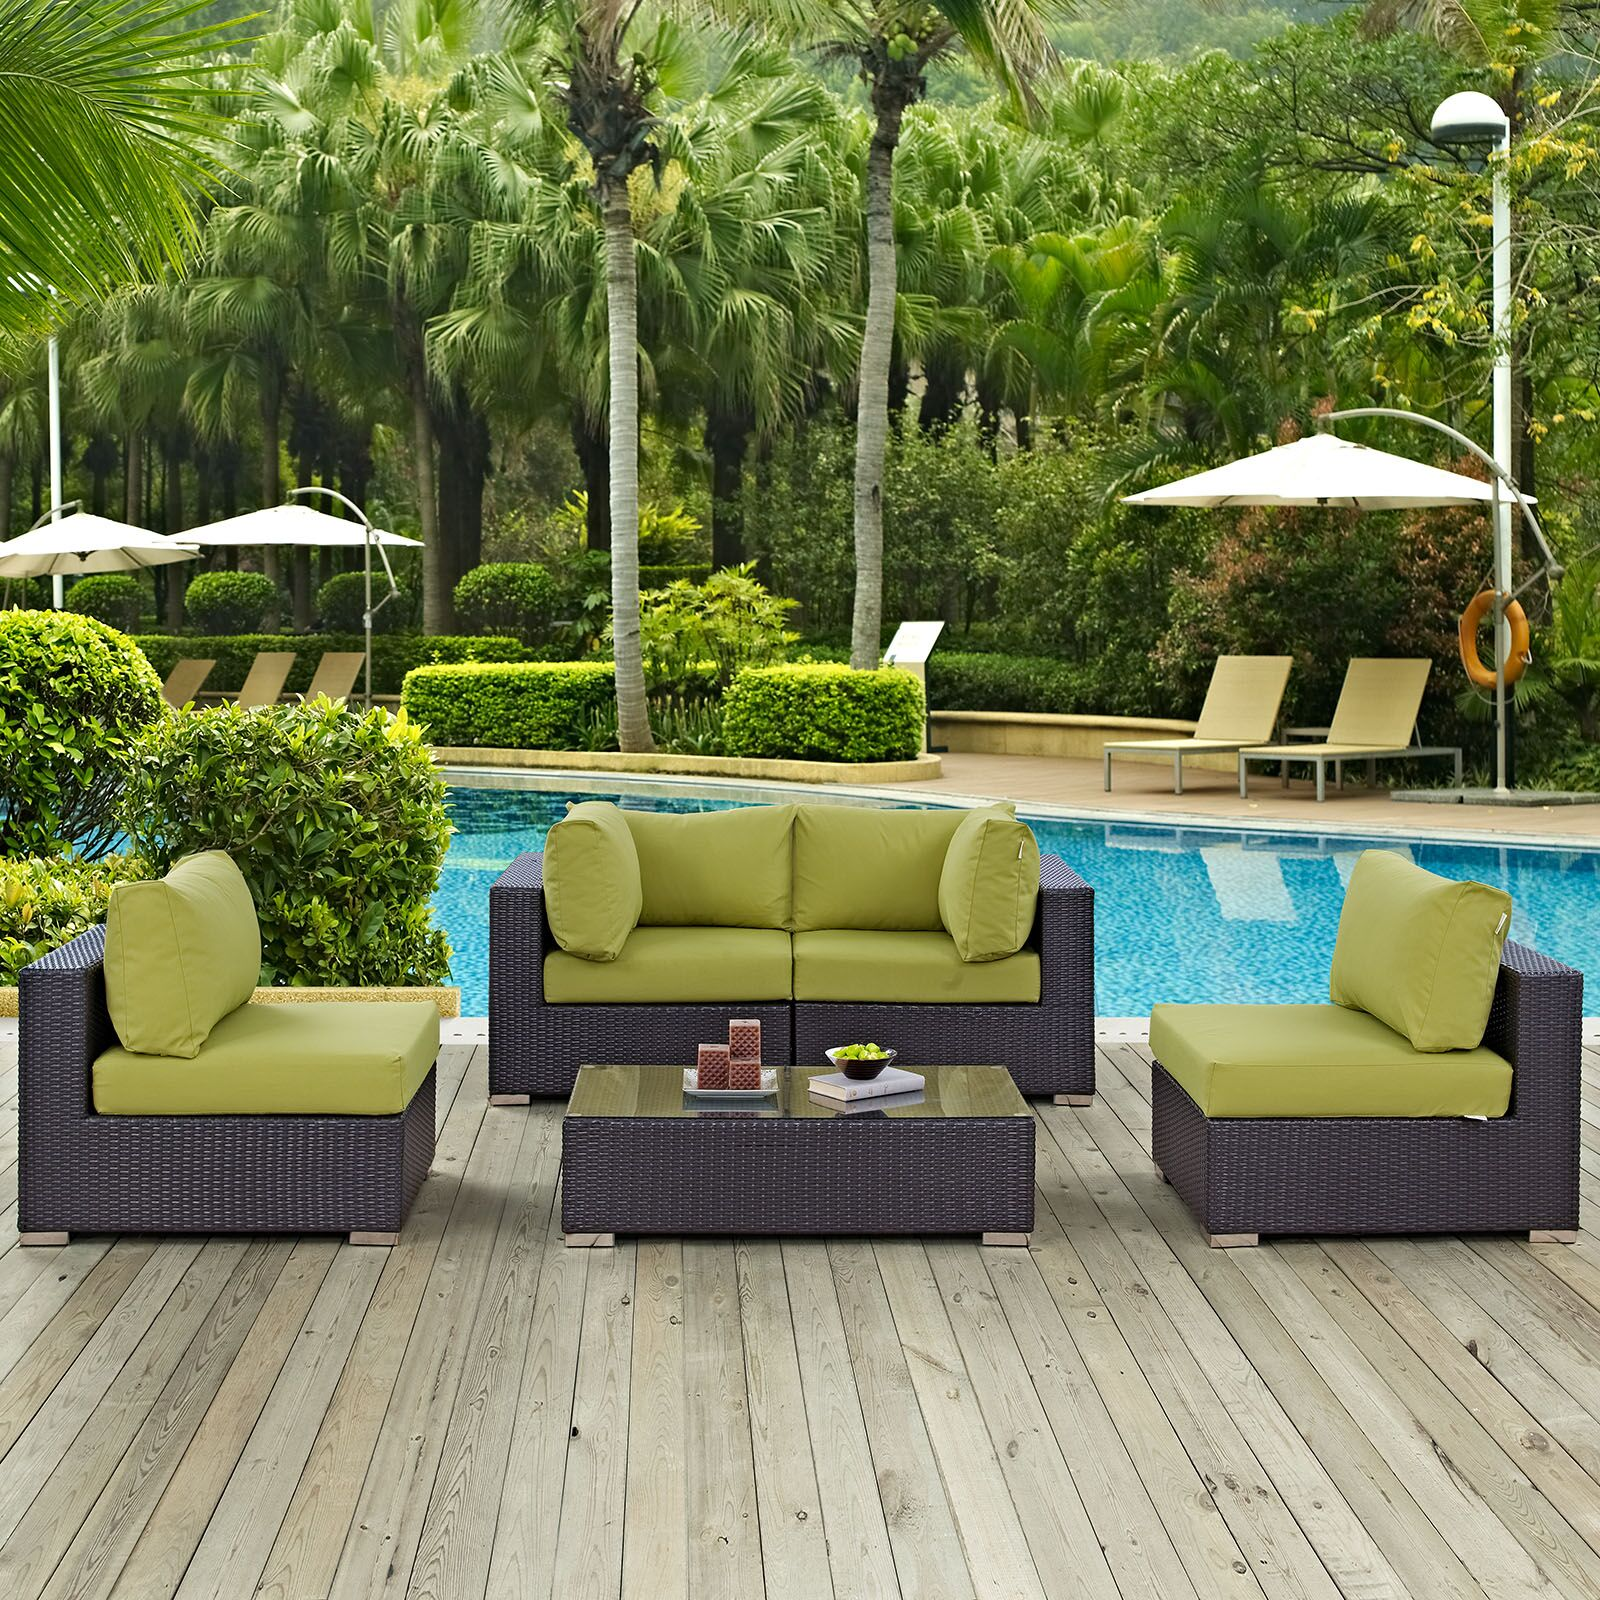 Ryele 5 Piece Rattan Sectional Set with Cushions Fabric: Peridot